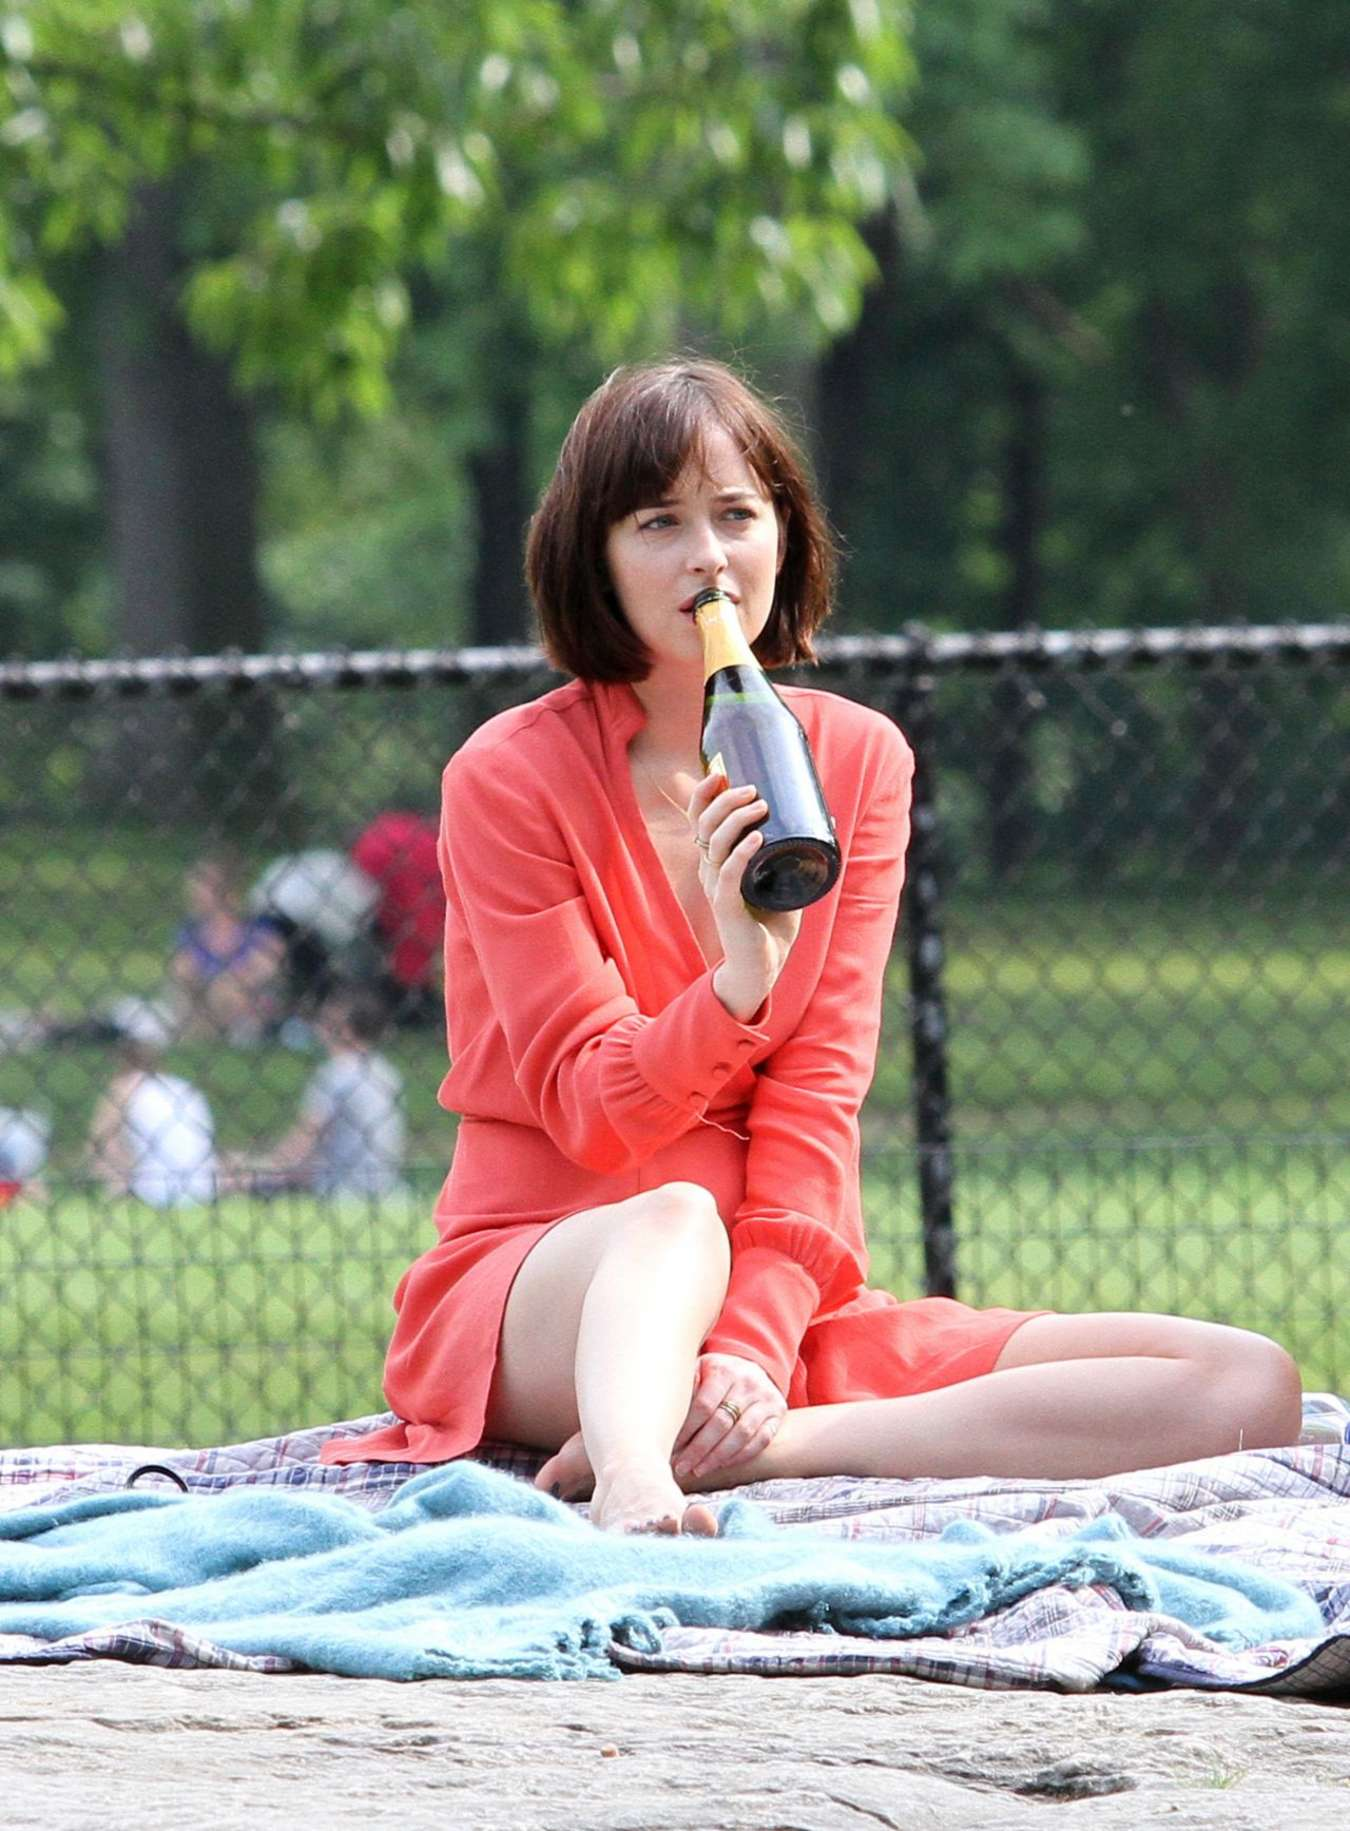 Dakota johnson in red dress on how to be single set 30 gotceleb dakota johnson in red dress on how to be single set 30 full size ccuart Choice Image